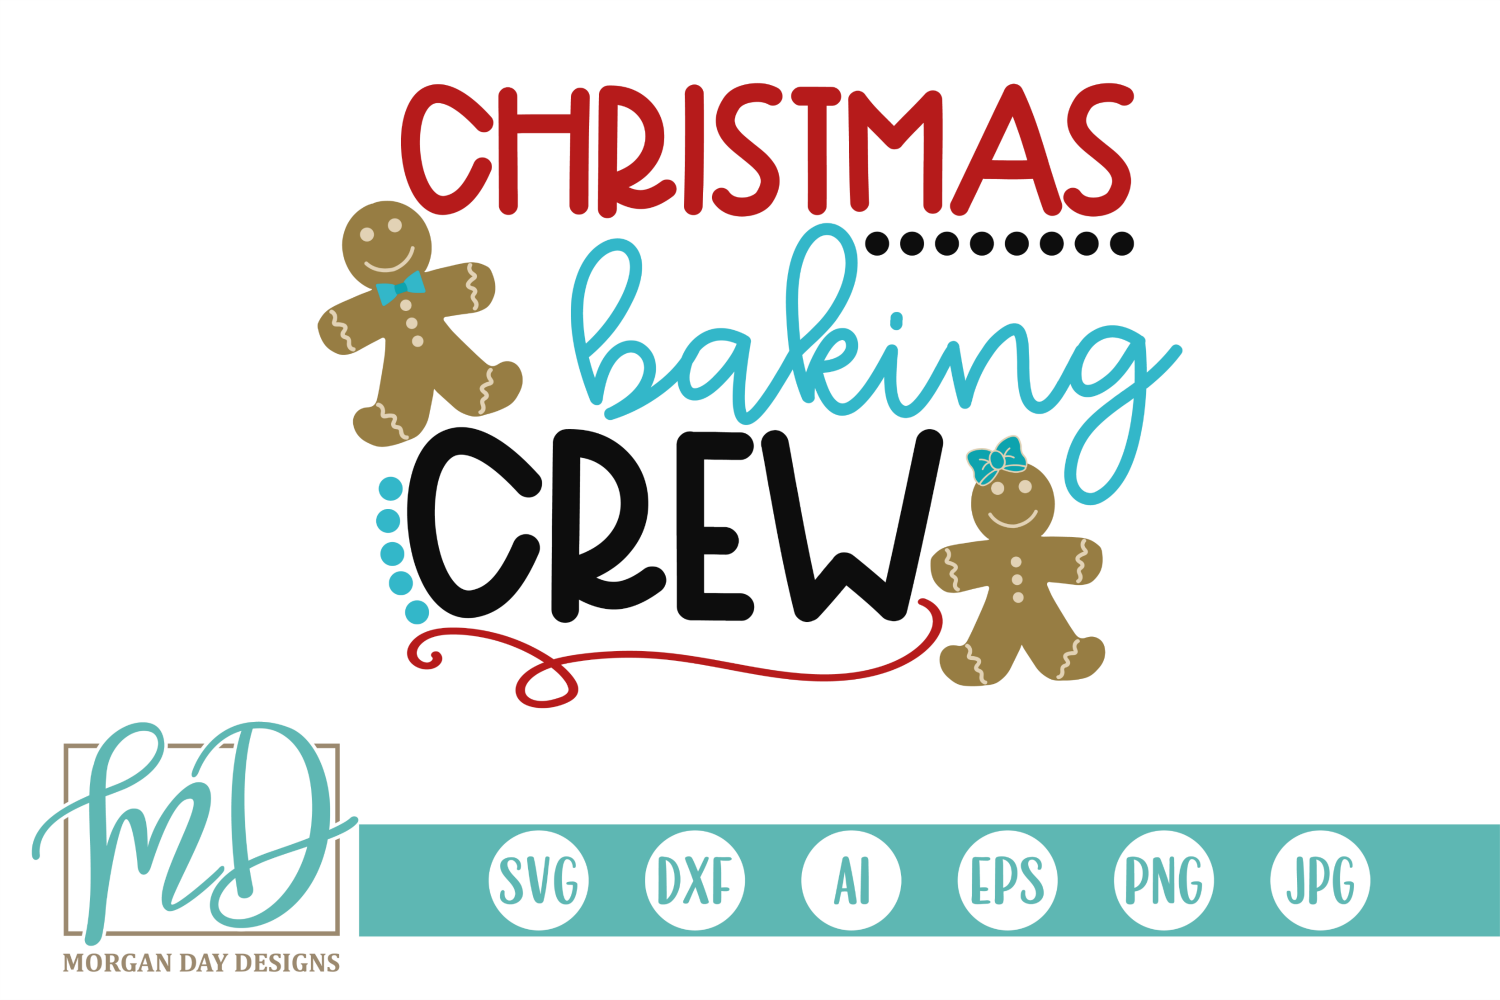 Download Free Christmas Baking Crew Graphic By Morgan Day Designs Creative for Cricut Explore, Silhouette and other cutting machines.